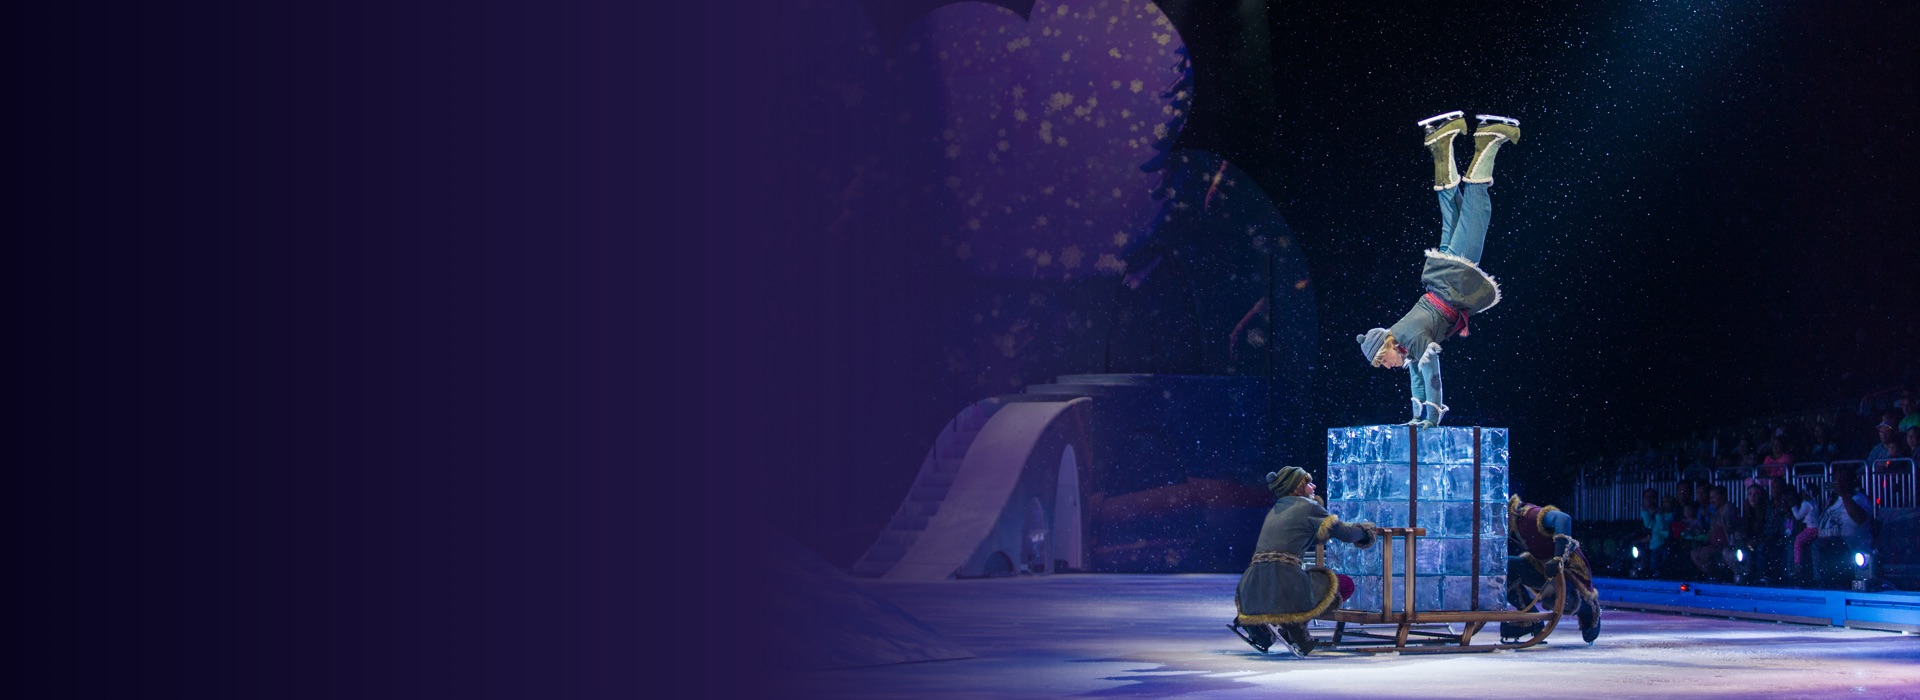 Mickey's Search Party Frozen